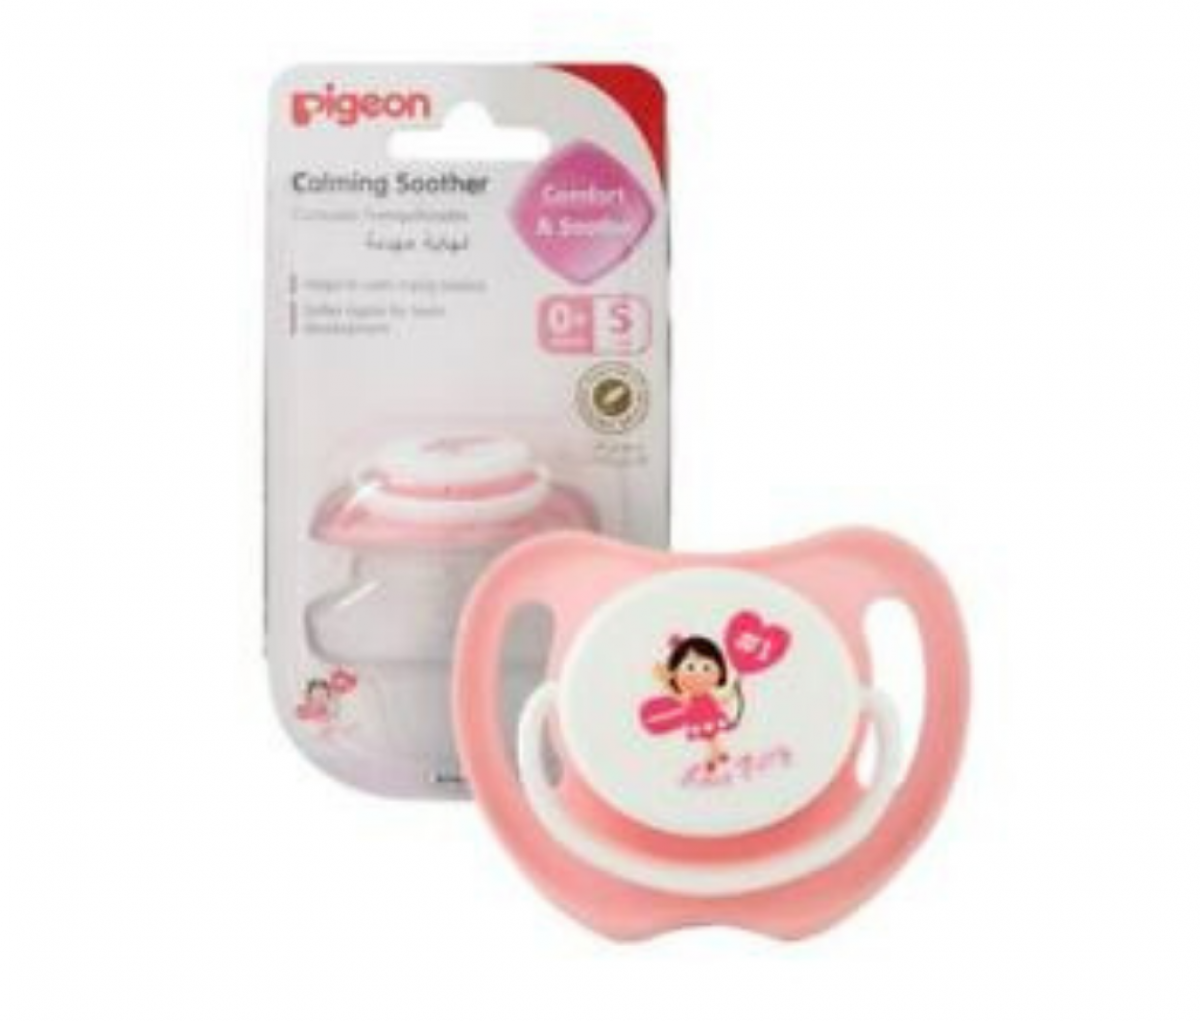 Calming Soother (L) Size Love Fairy, (ENG/SPN), Blister Pack  [78144E]